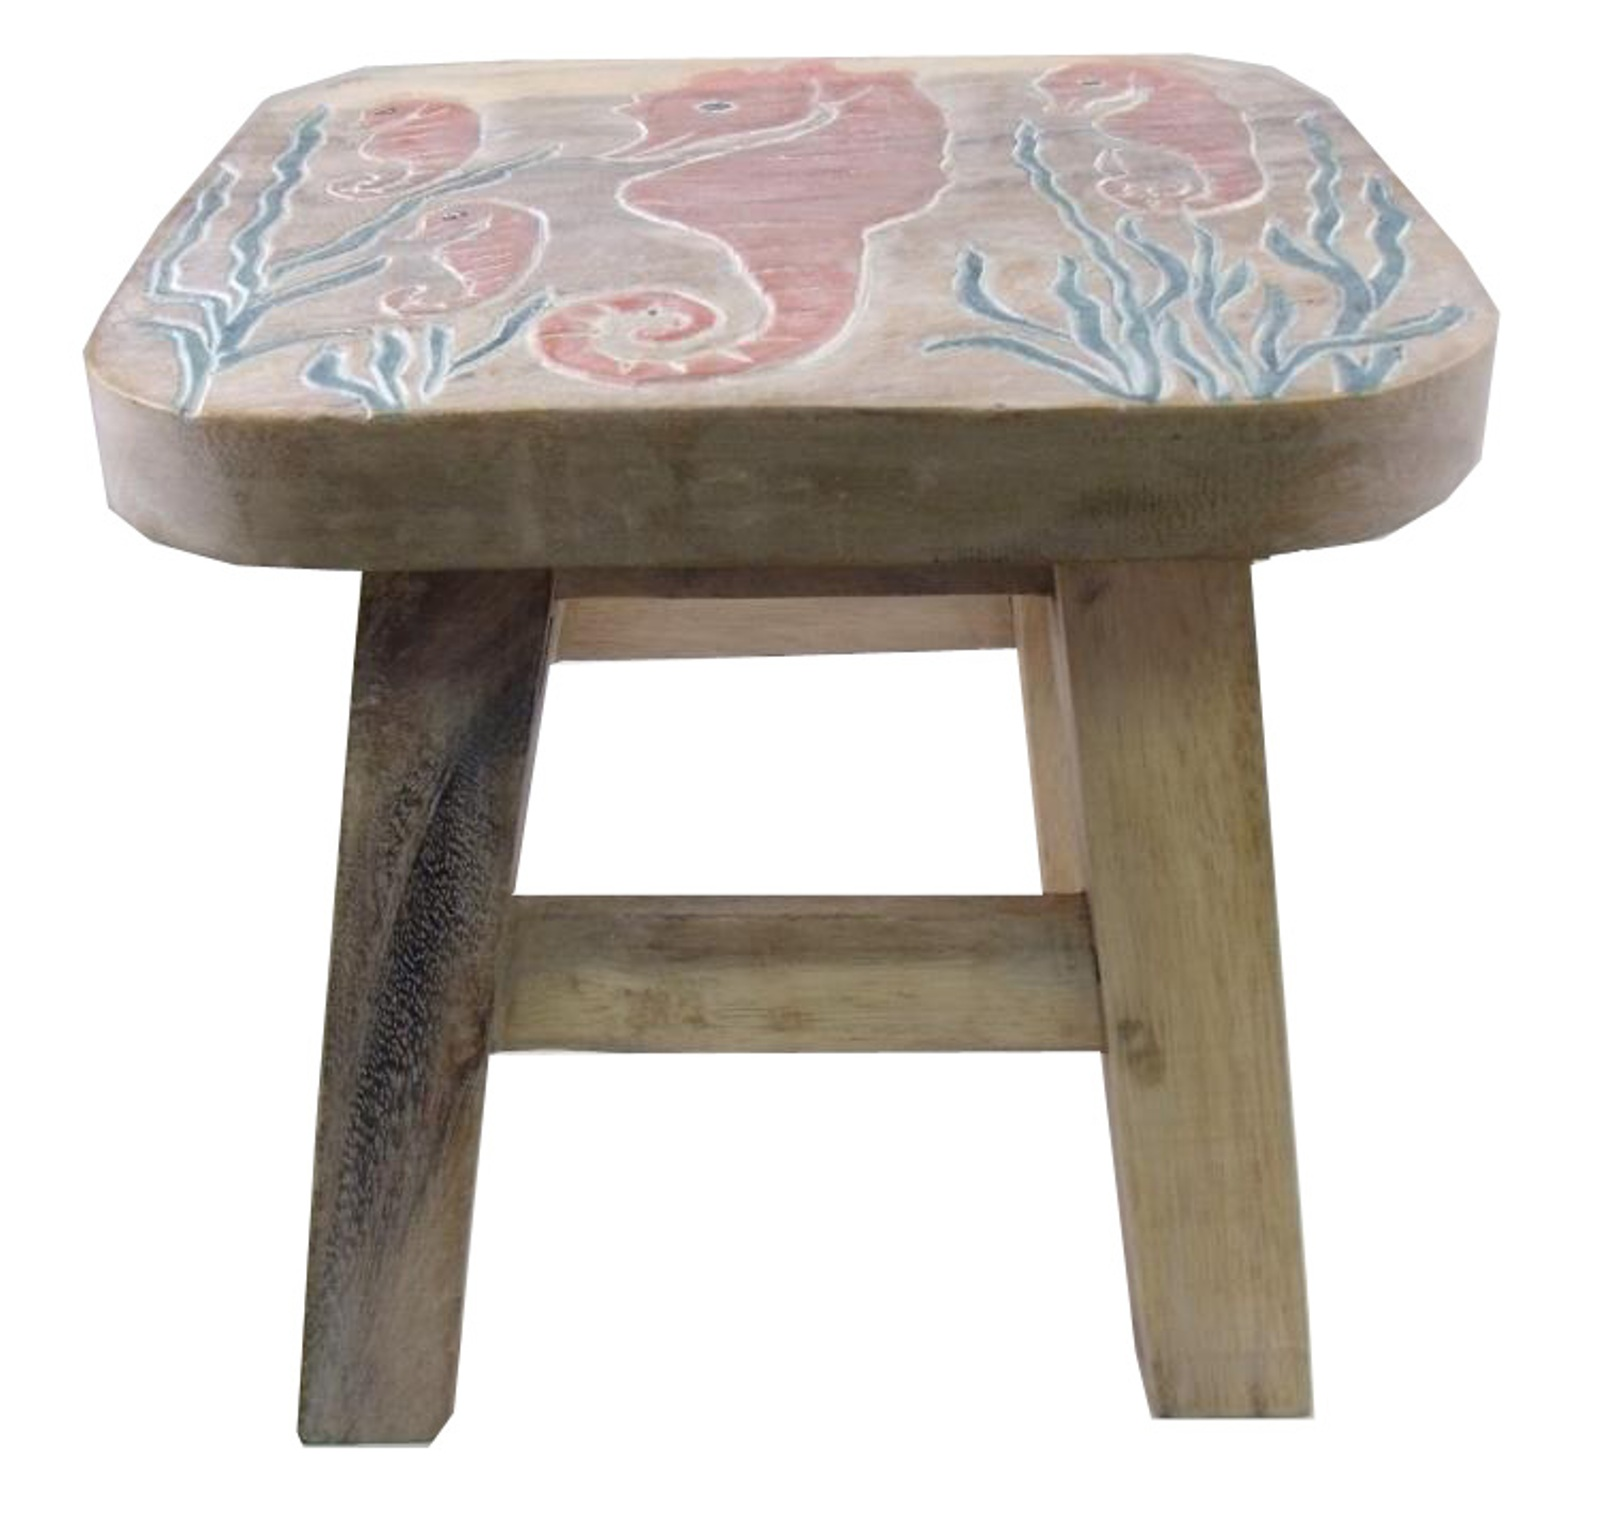 Details about Tropical Seahorse in Sea Grass Childs Wooden Step Stool